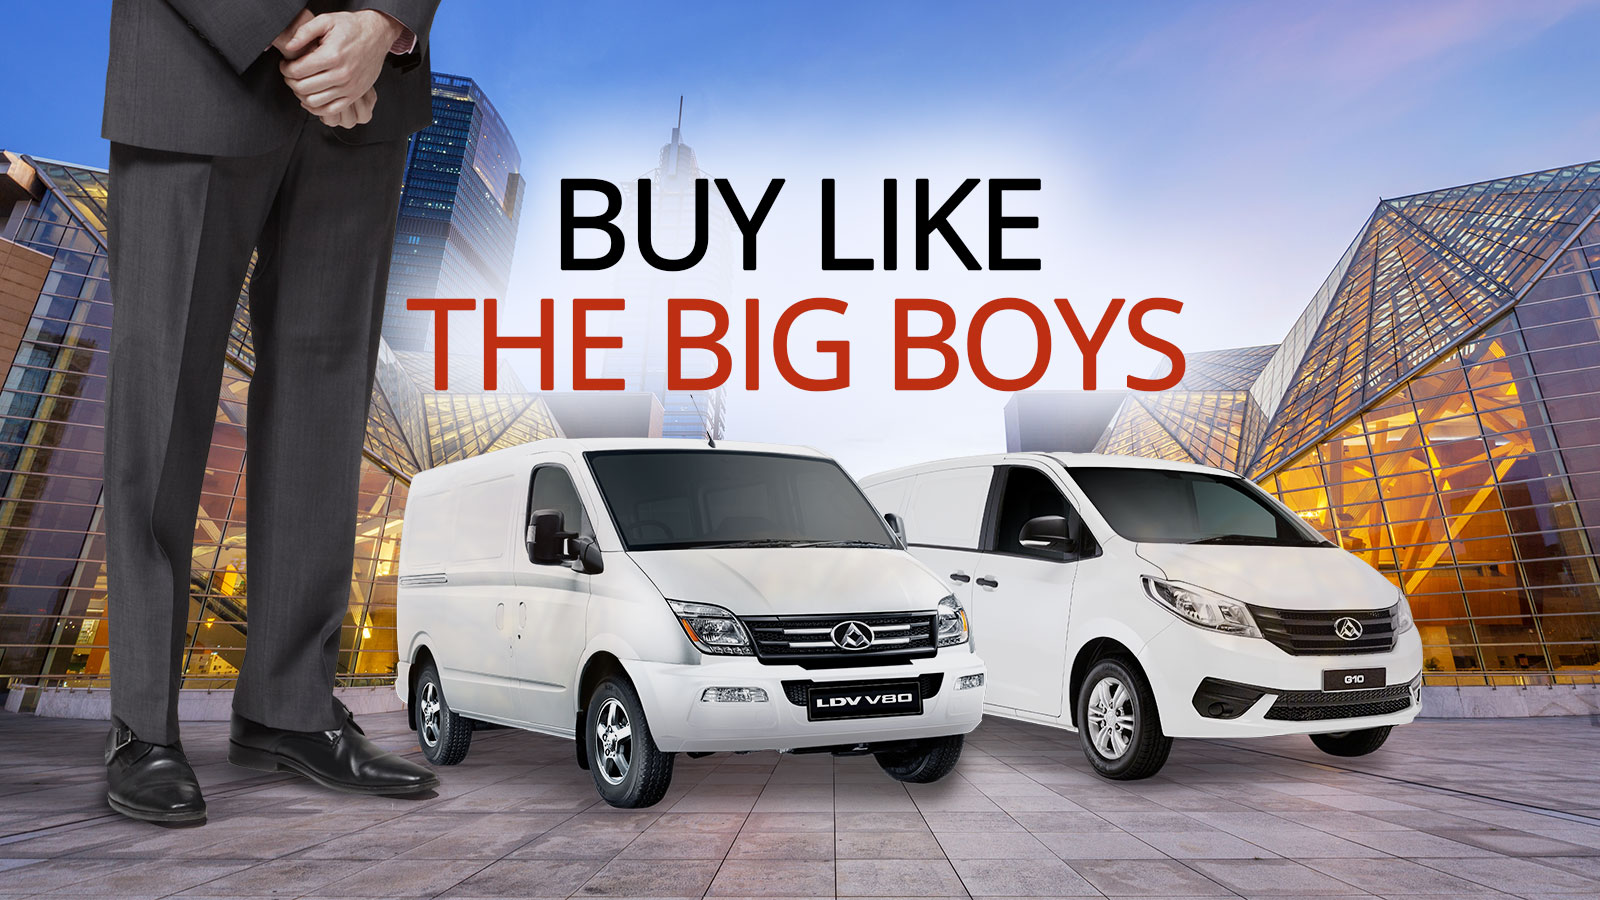 Ldv Automotive The Big Car Brand John Hughes